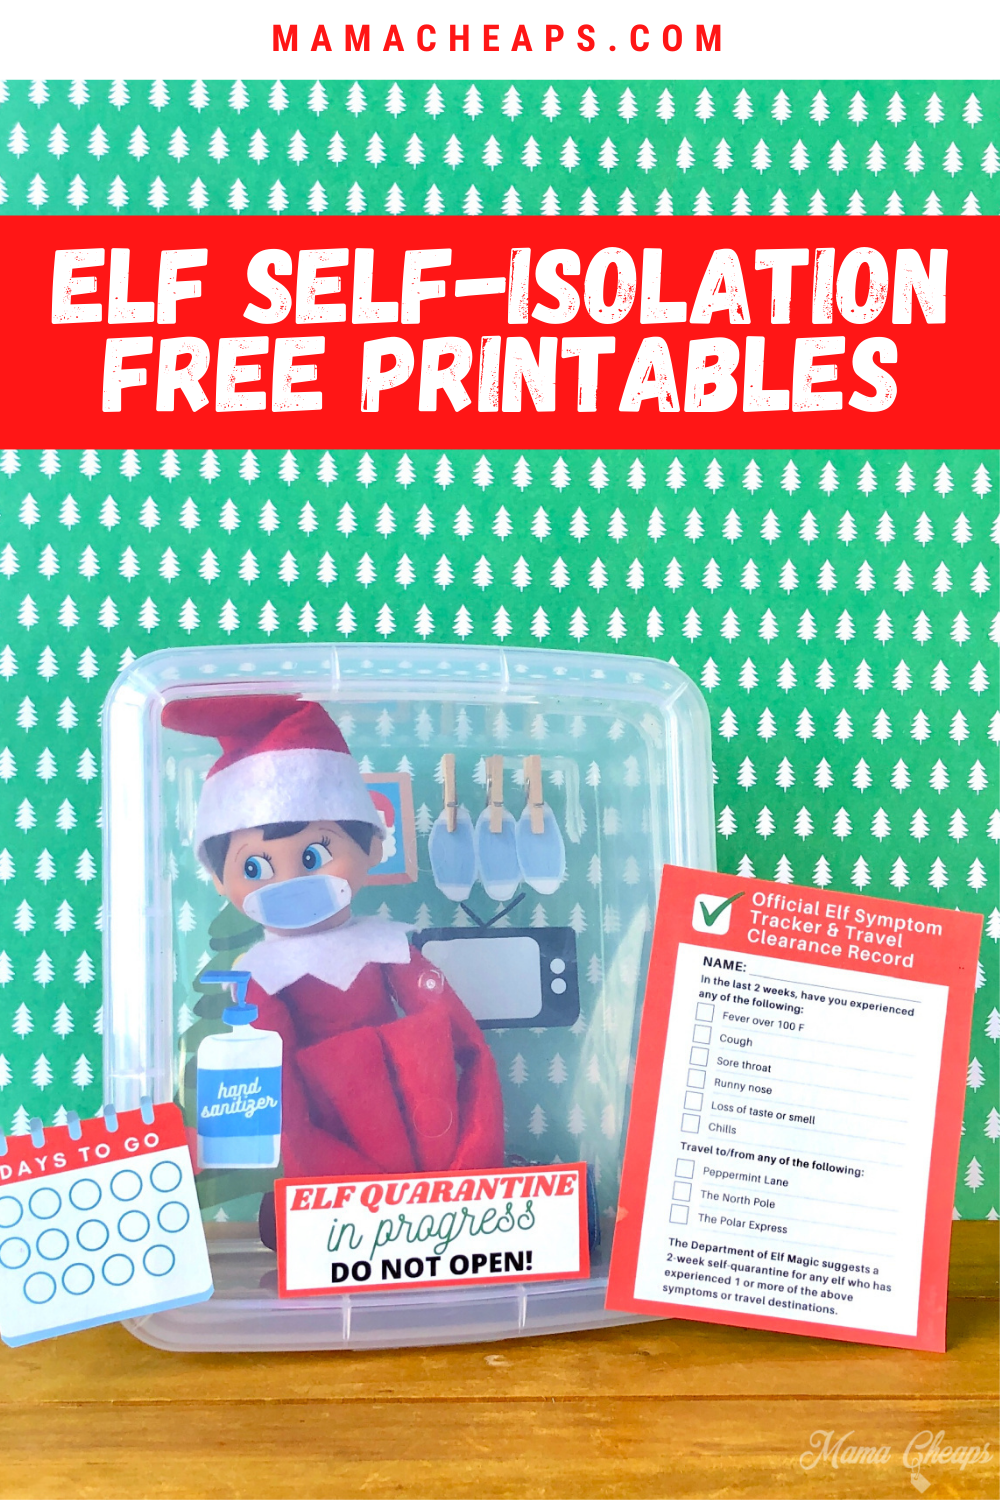 dea4d9f8b78fc174448e6da08f37454a - How To Get Elf On The Shelf Out Of Box